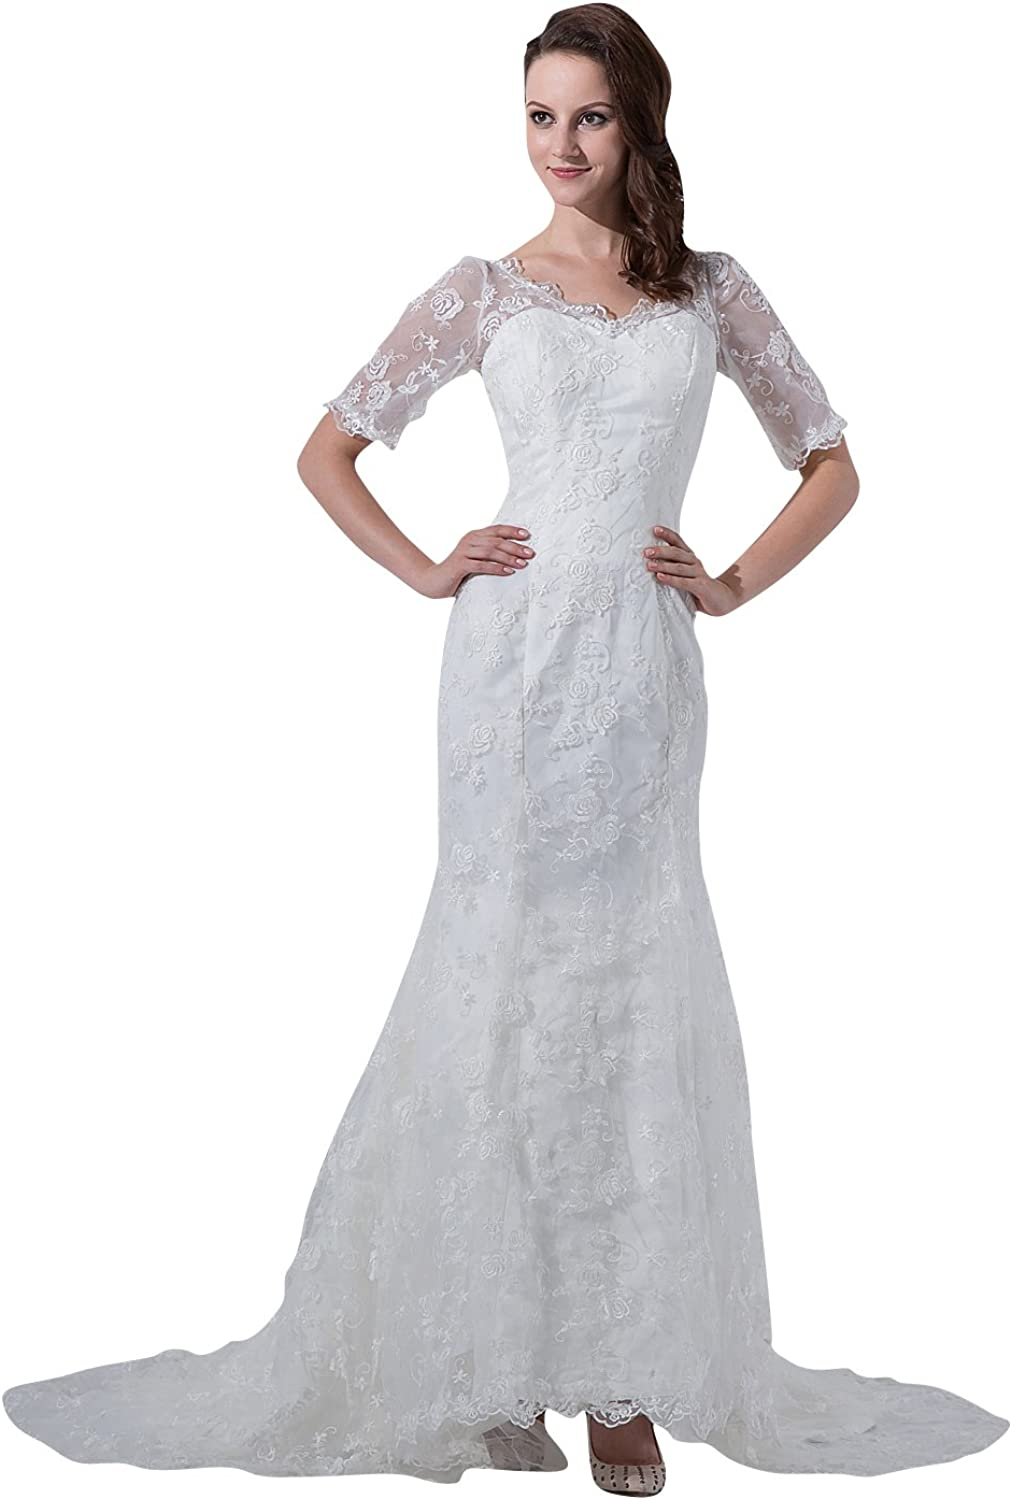 Vampal Ivory VNeck Lace Chapel Train Mermaid Wedding Dress With Half Sleeves